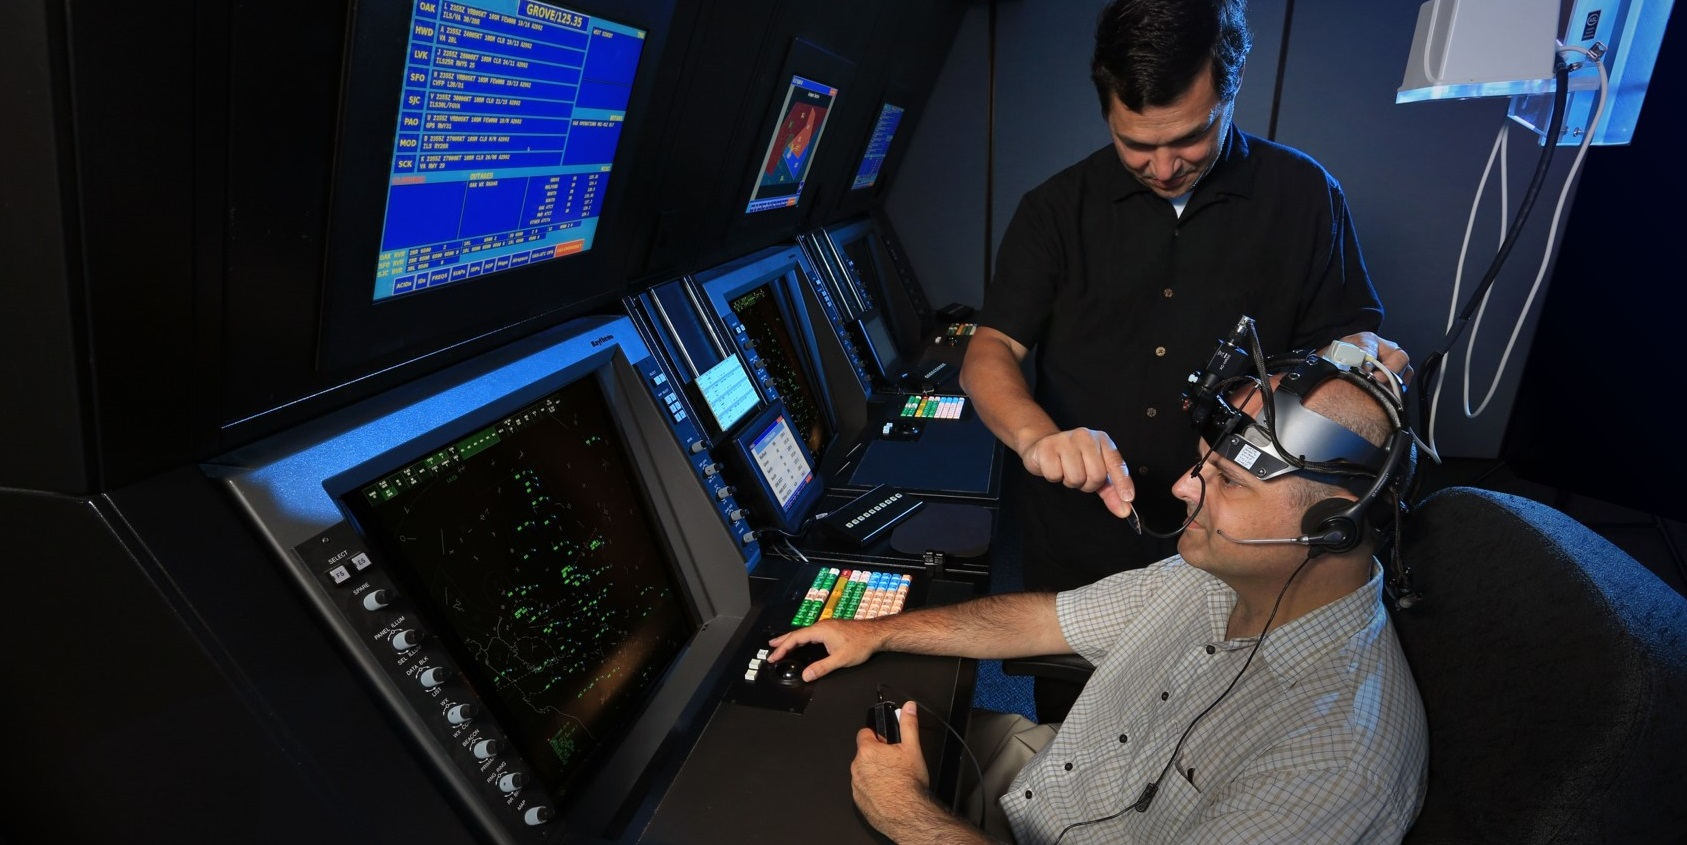 Air traffic control simulator with eye-tracking (FAA Tech Center)